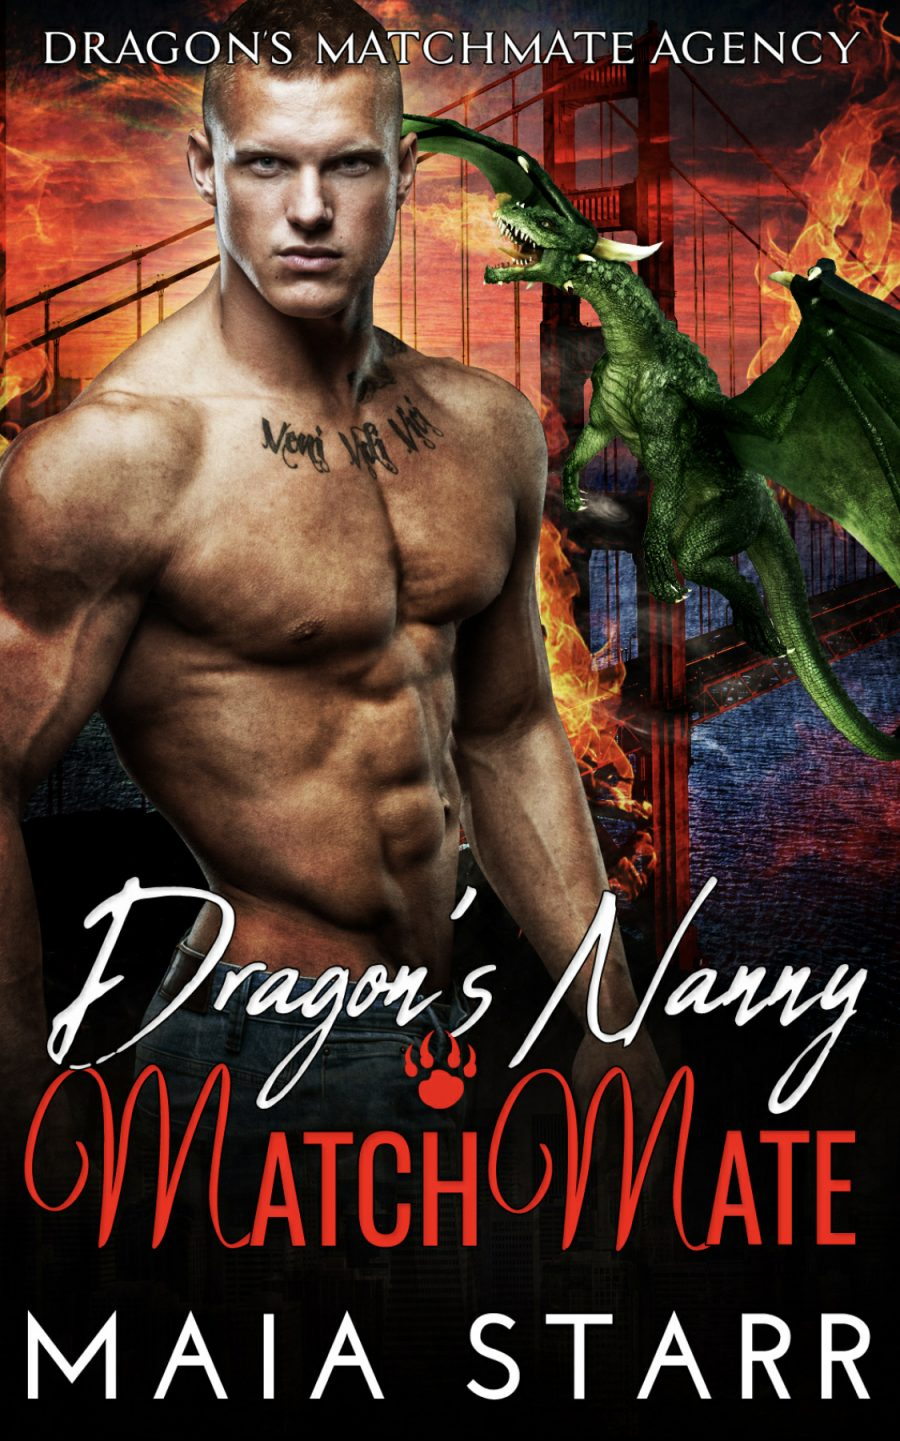 Dragon's Nanny MatchMate by Maia Starr - A Book Review #BookReview #Dragons #3Stars #HEA #StandAlone #Trite #KindleUnlimited #KU